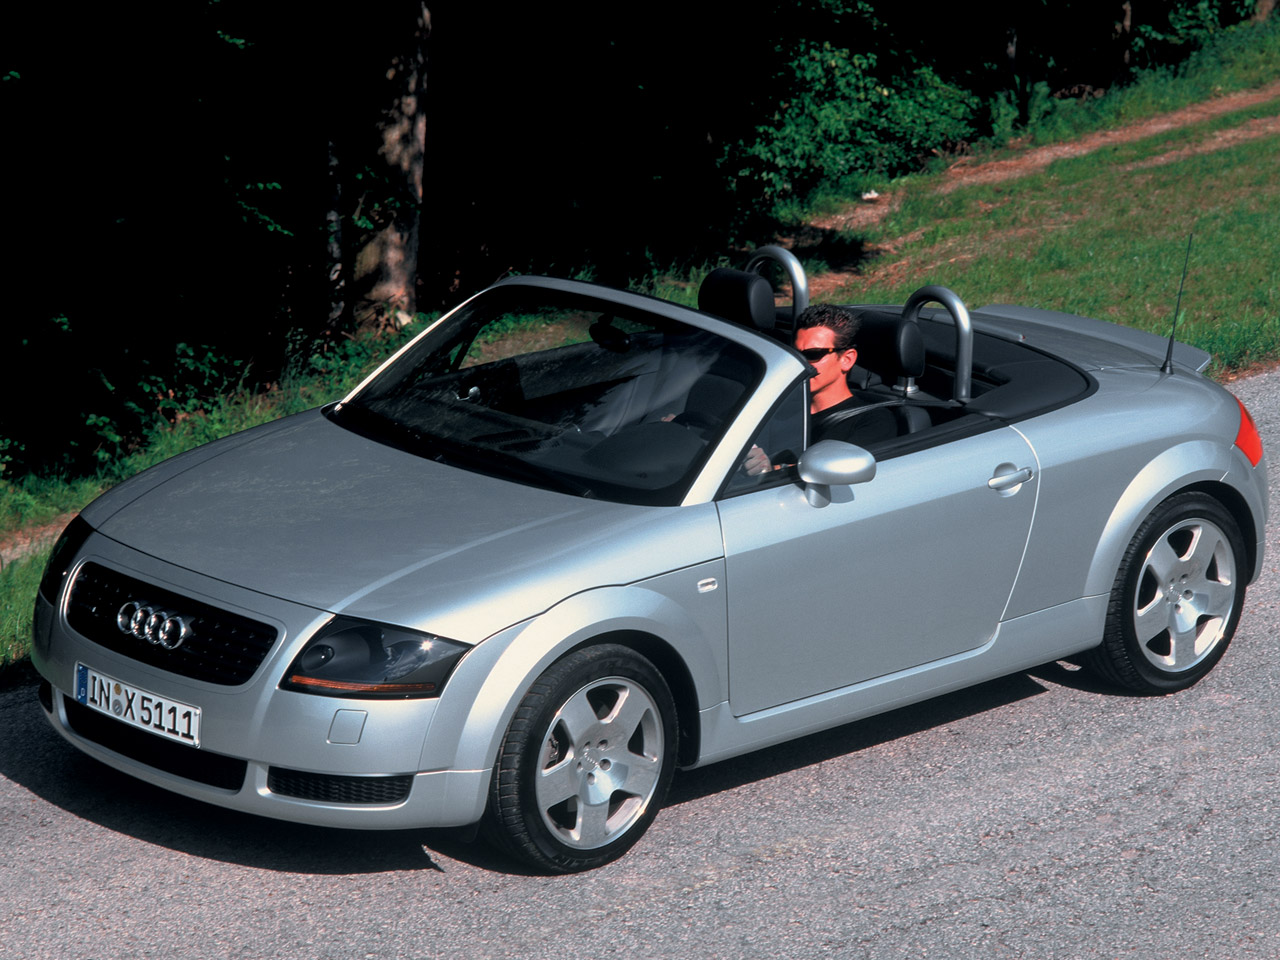 Used Audi TT Cars for Sale  AutoVillage UK